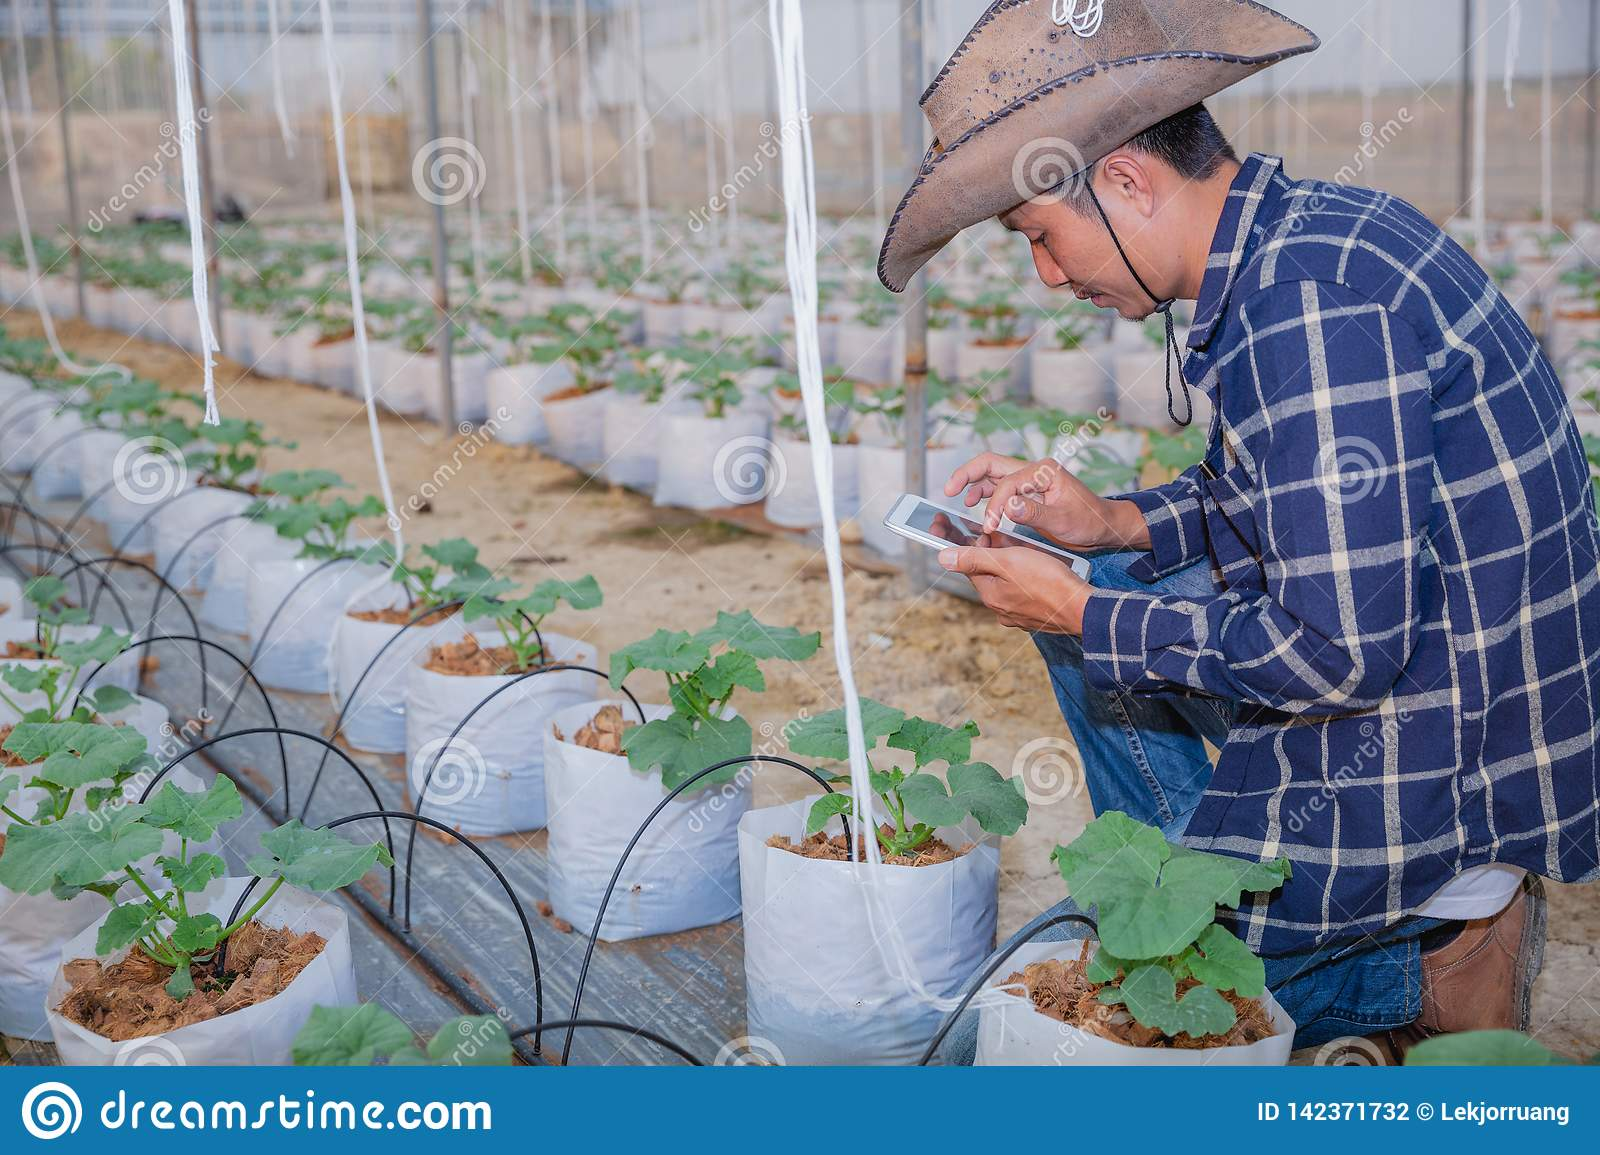 Agriculture technology farmer man using tablet computer analysis data. The agronomist examining the growth of plants on the